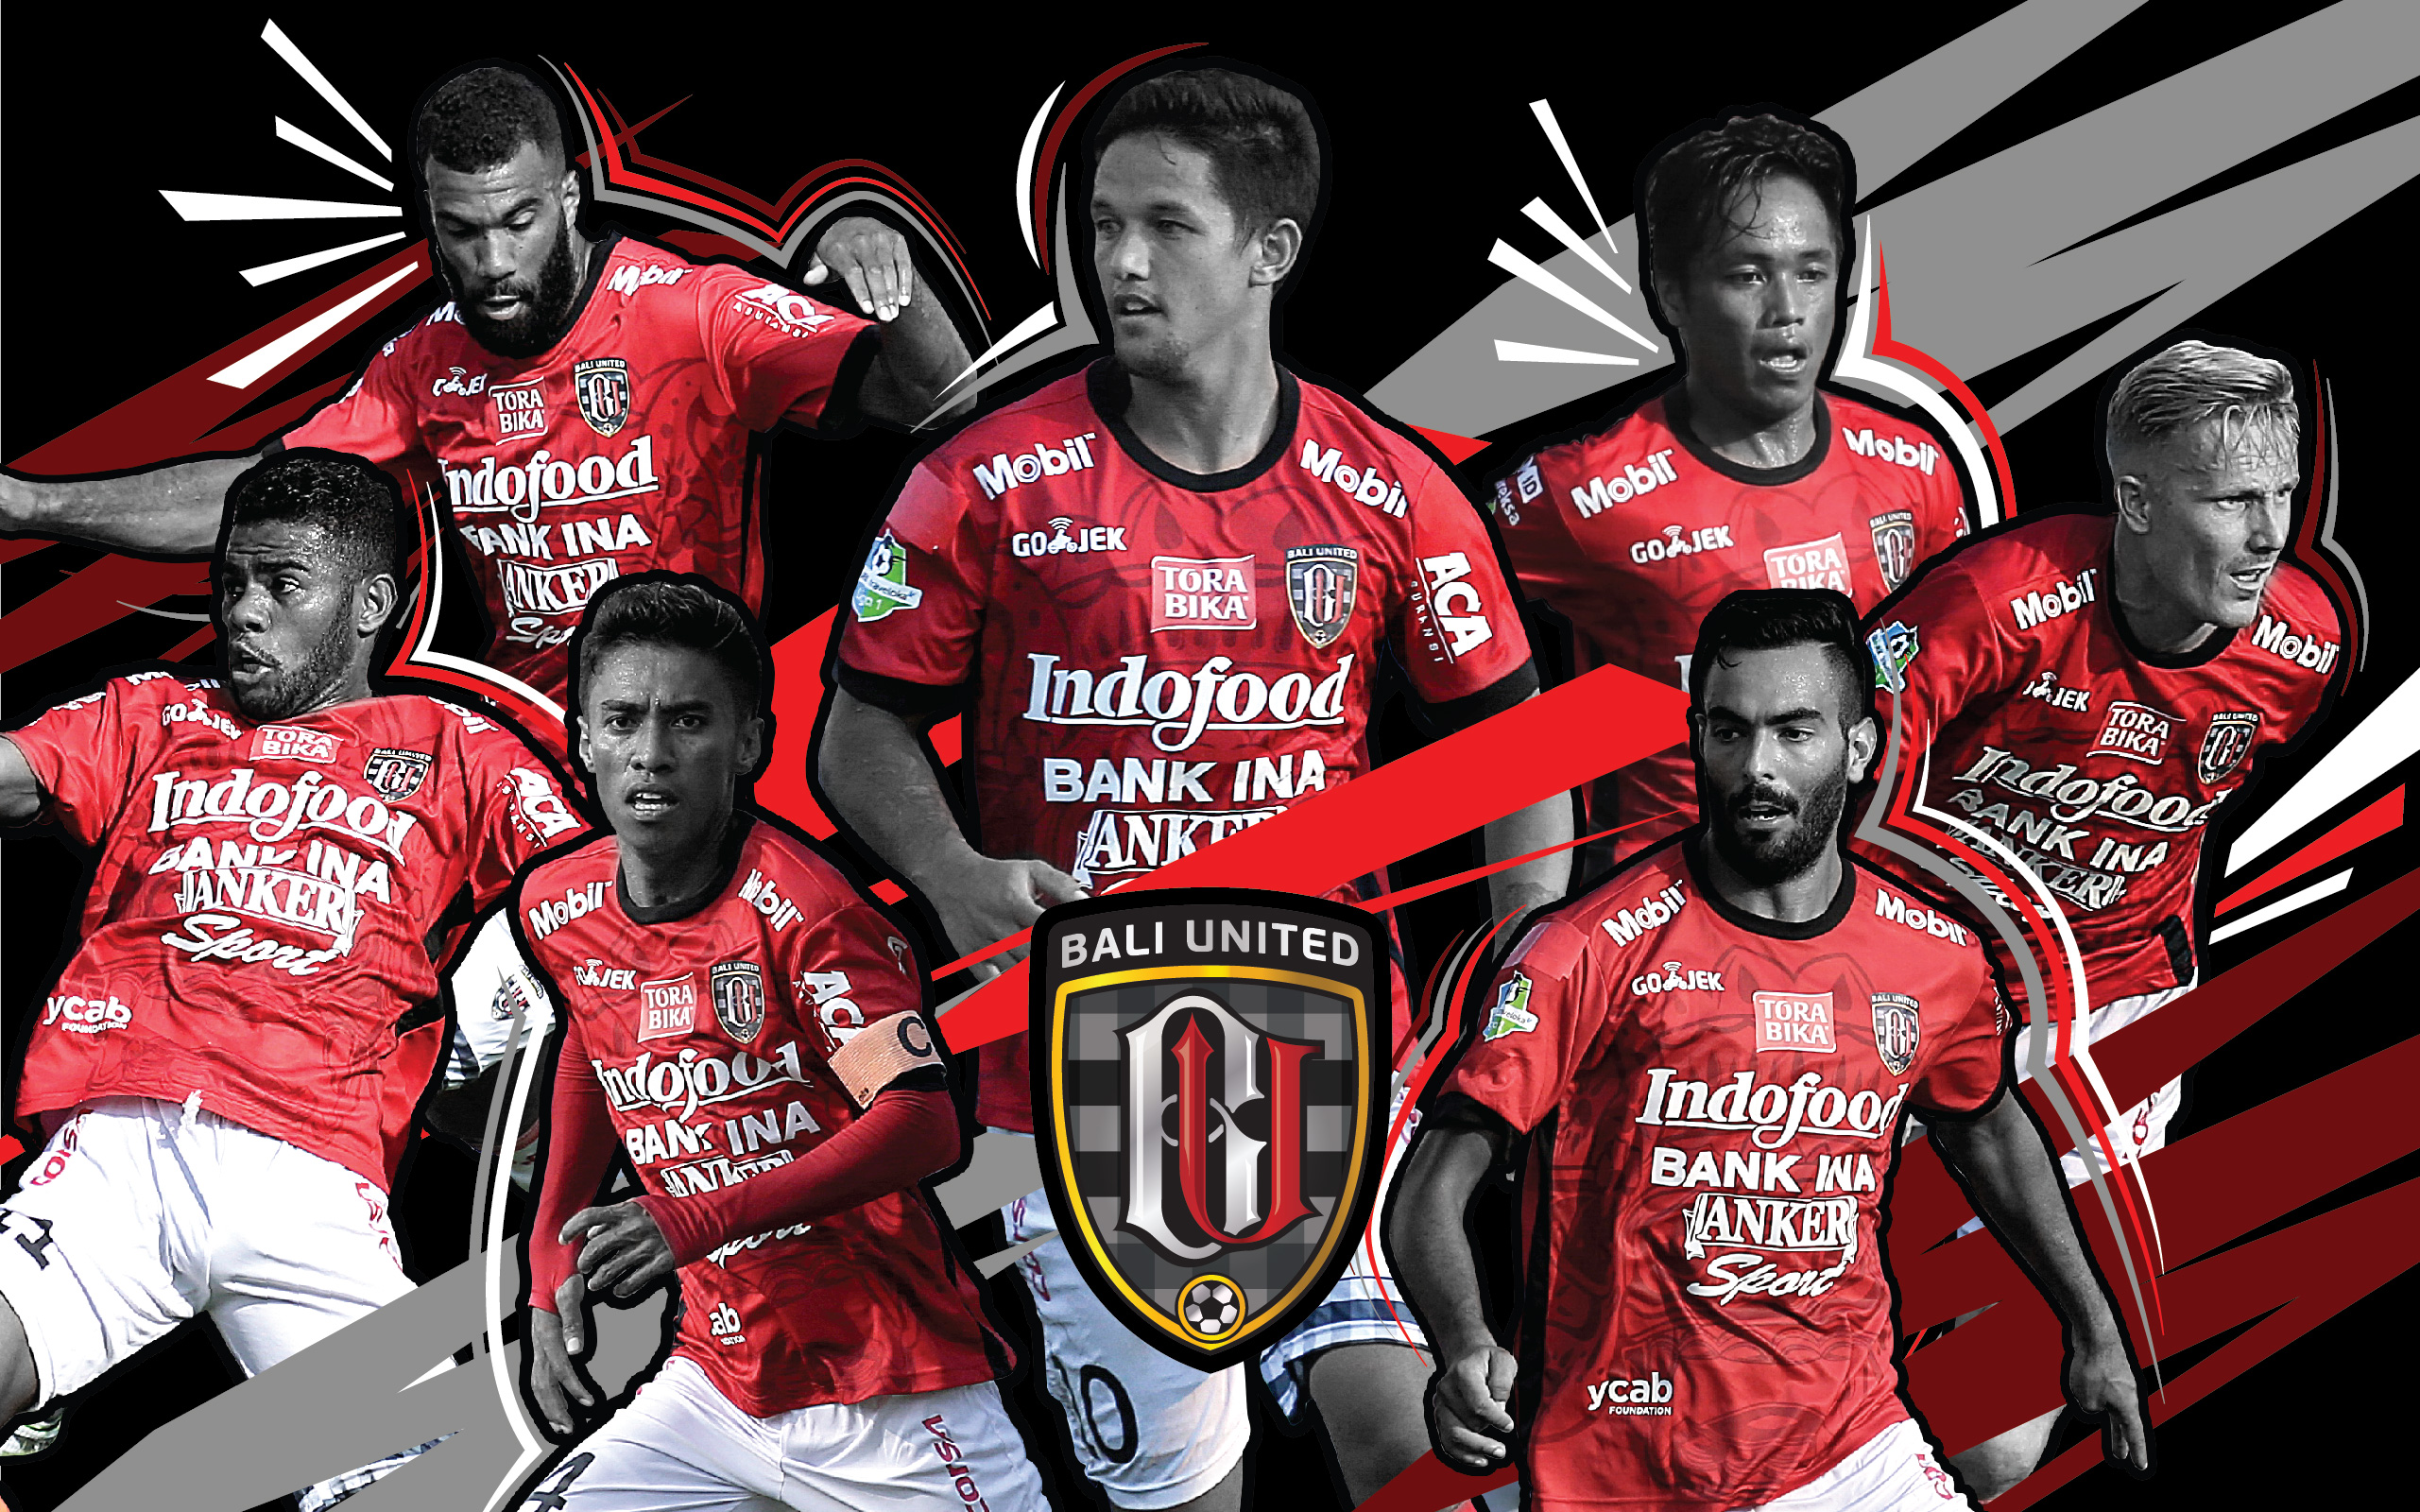 Desktop Wallpaper Bali United Official Website